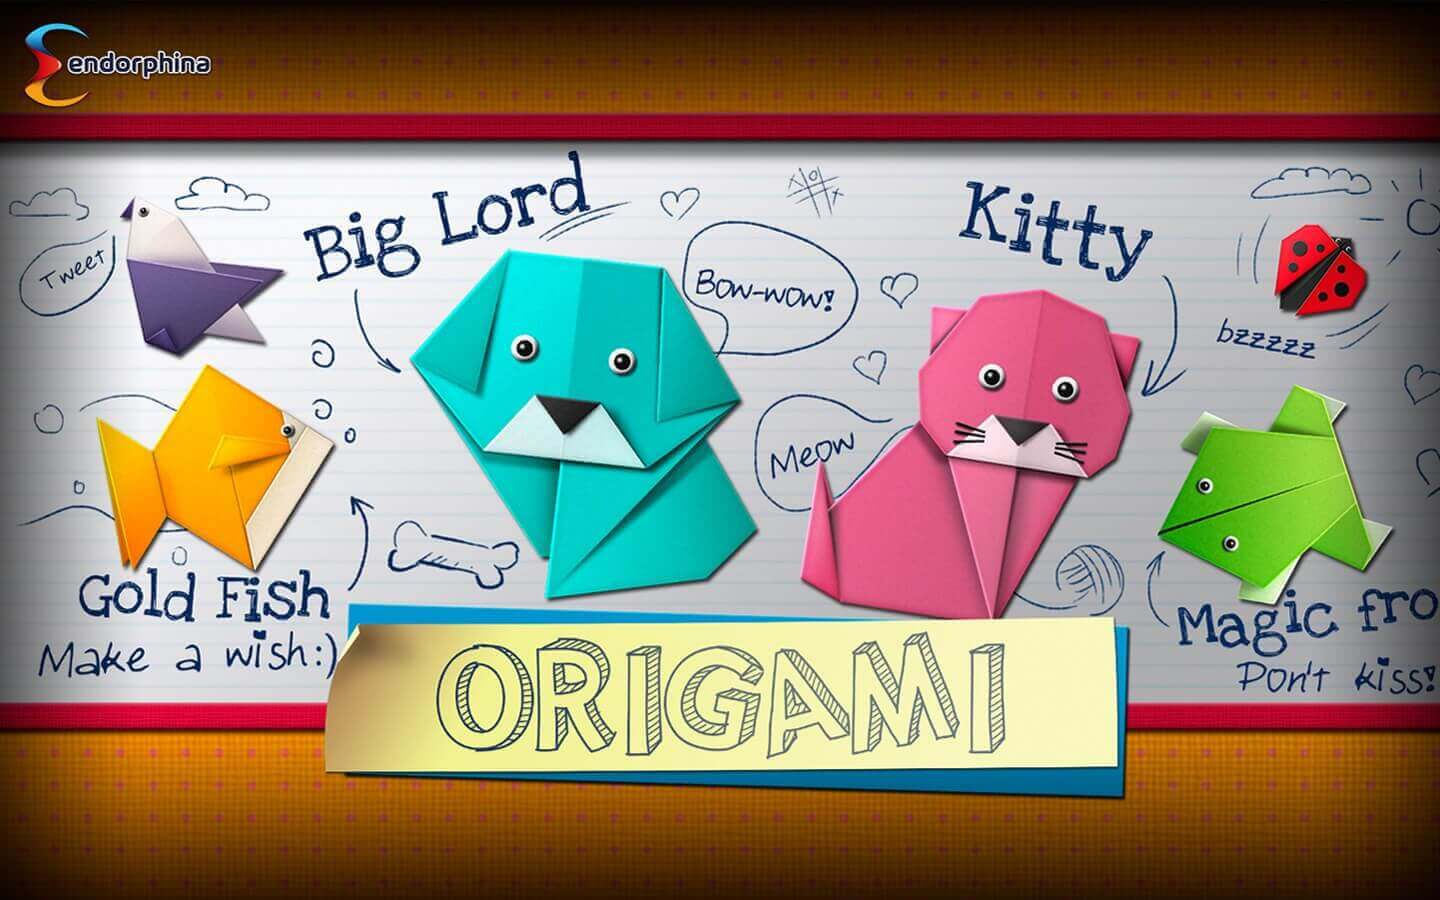 Origami - play demo